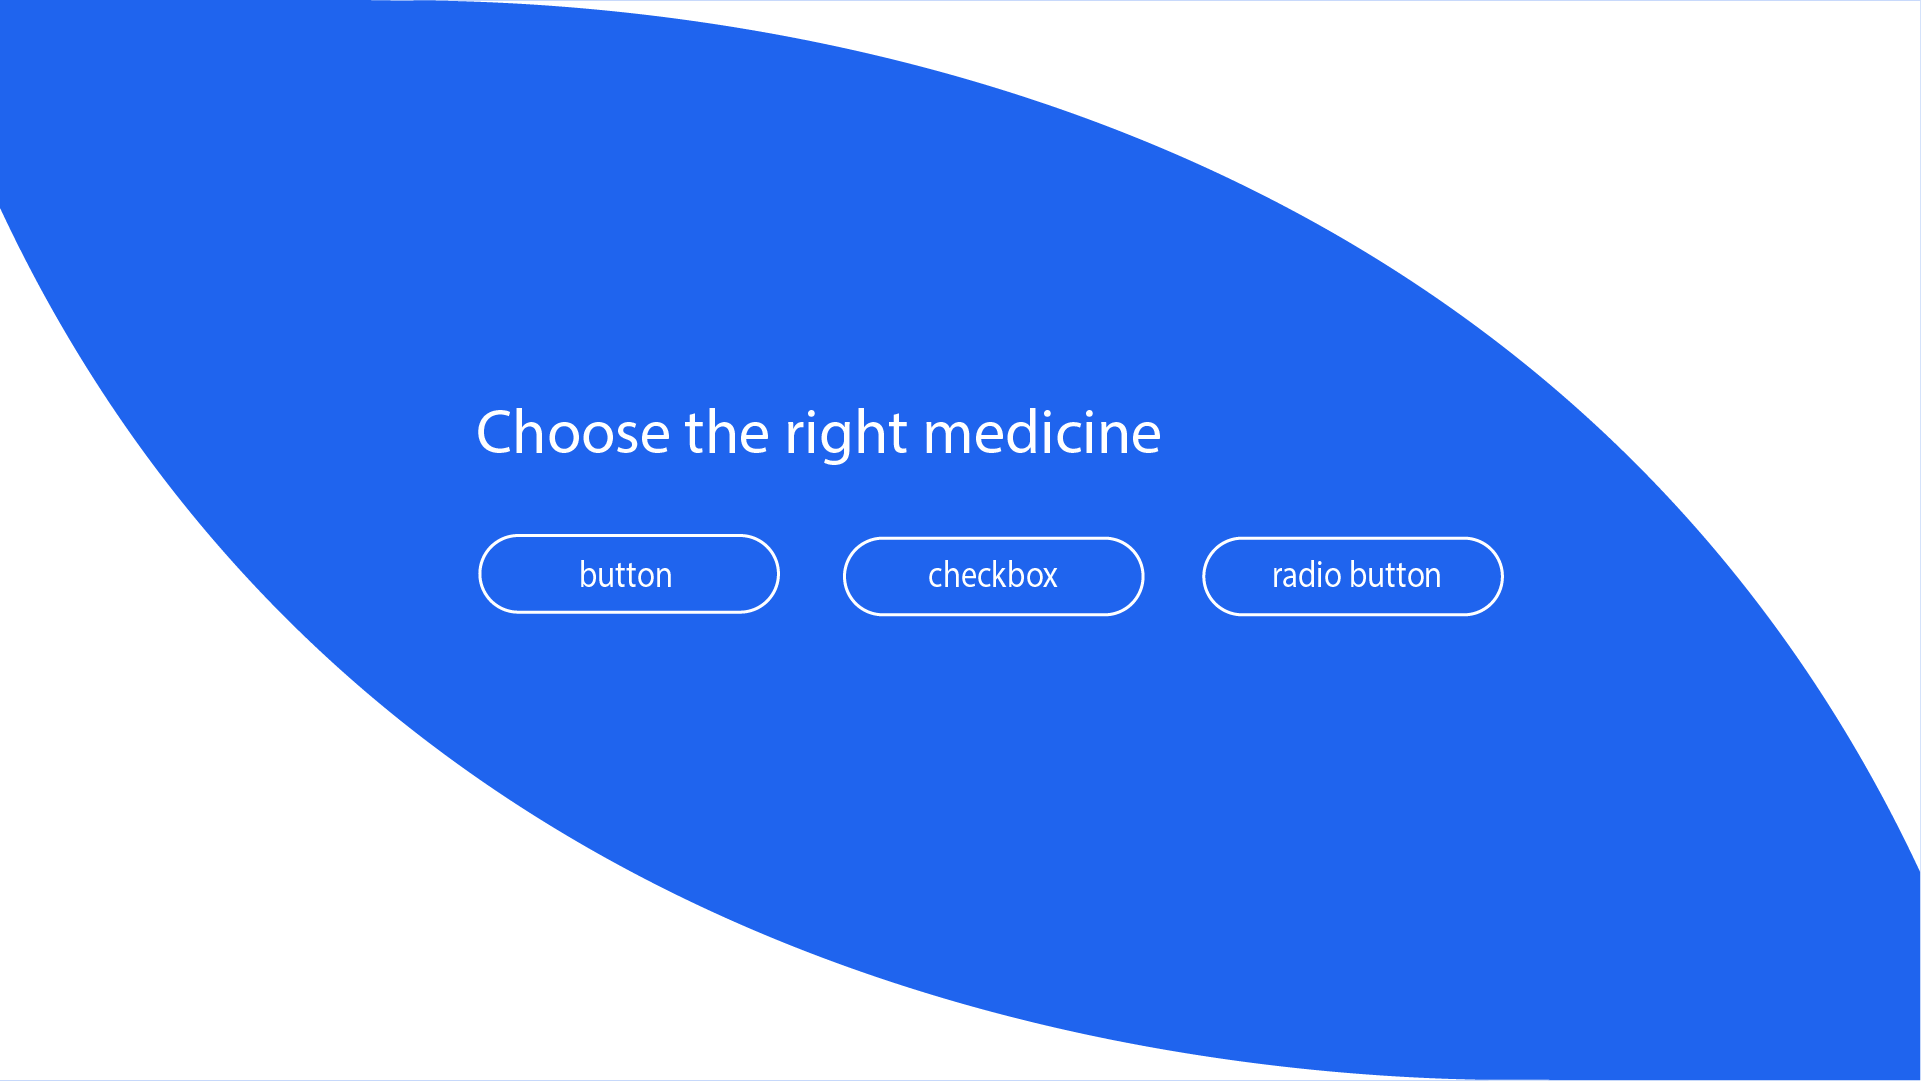 Choose the right medicine from the following interactions: button, checkbox, or radio button